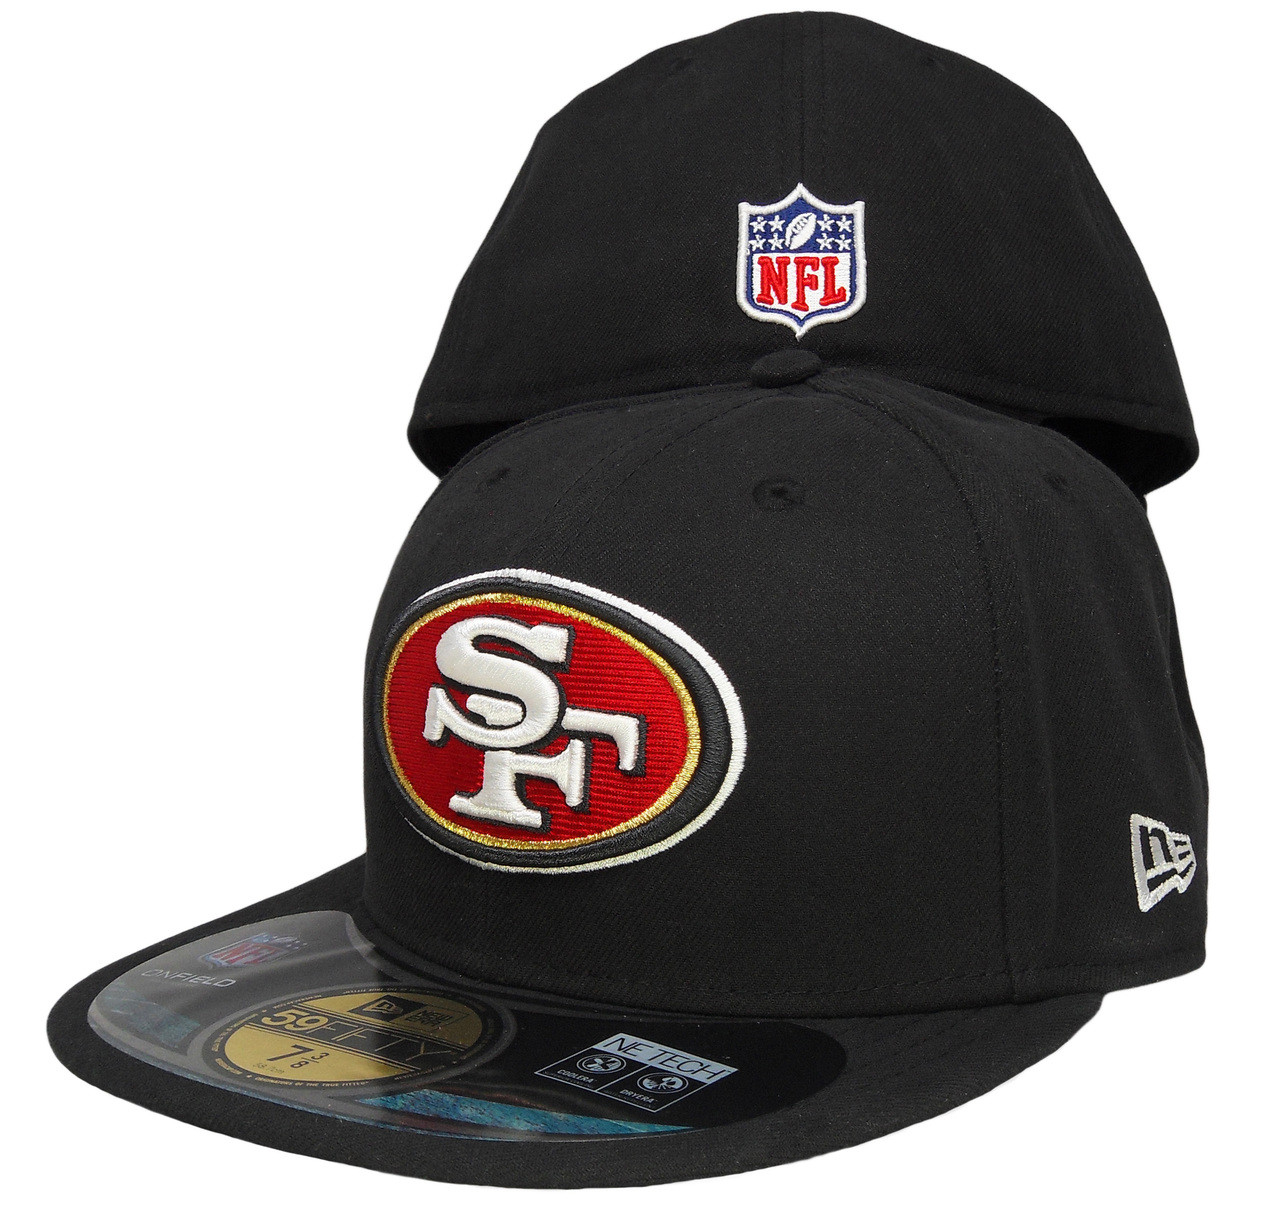 San Francisco 49ers New Era 59Fifty Onfield Fitted Hat - Black b8fab61d0